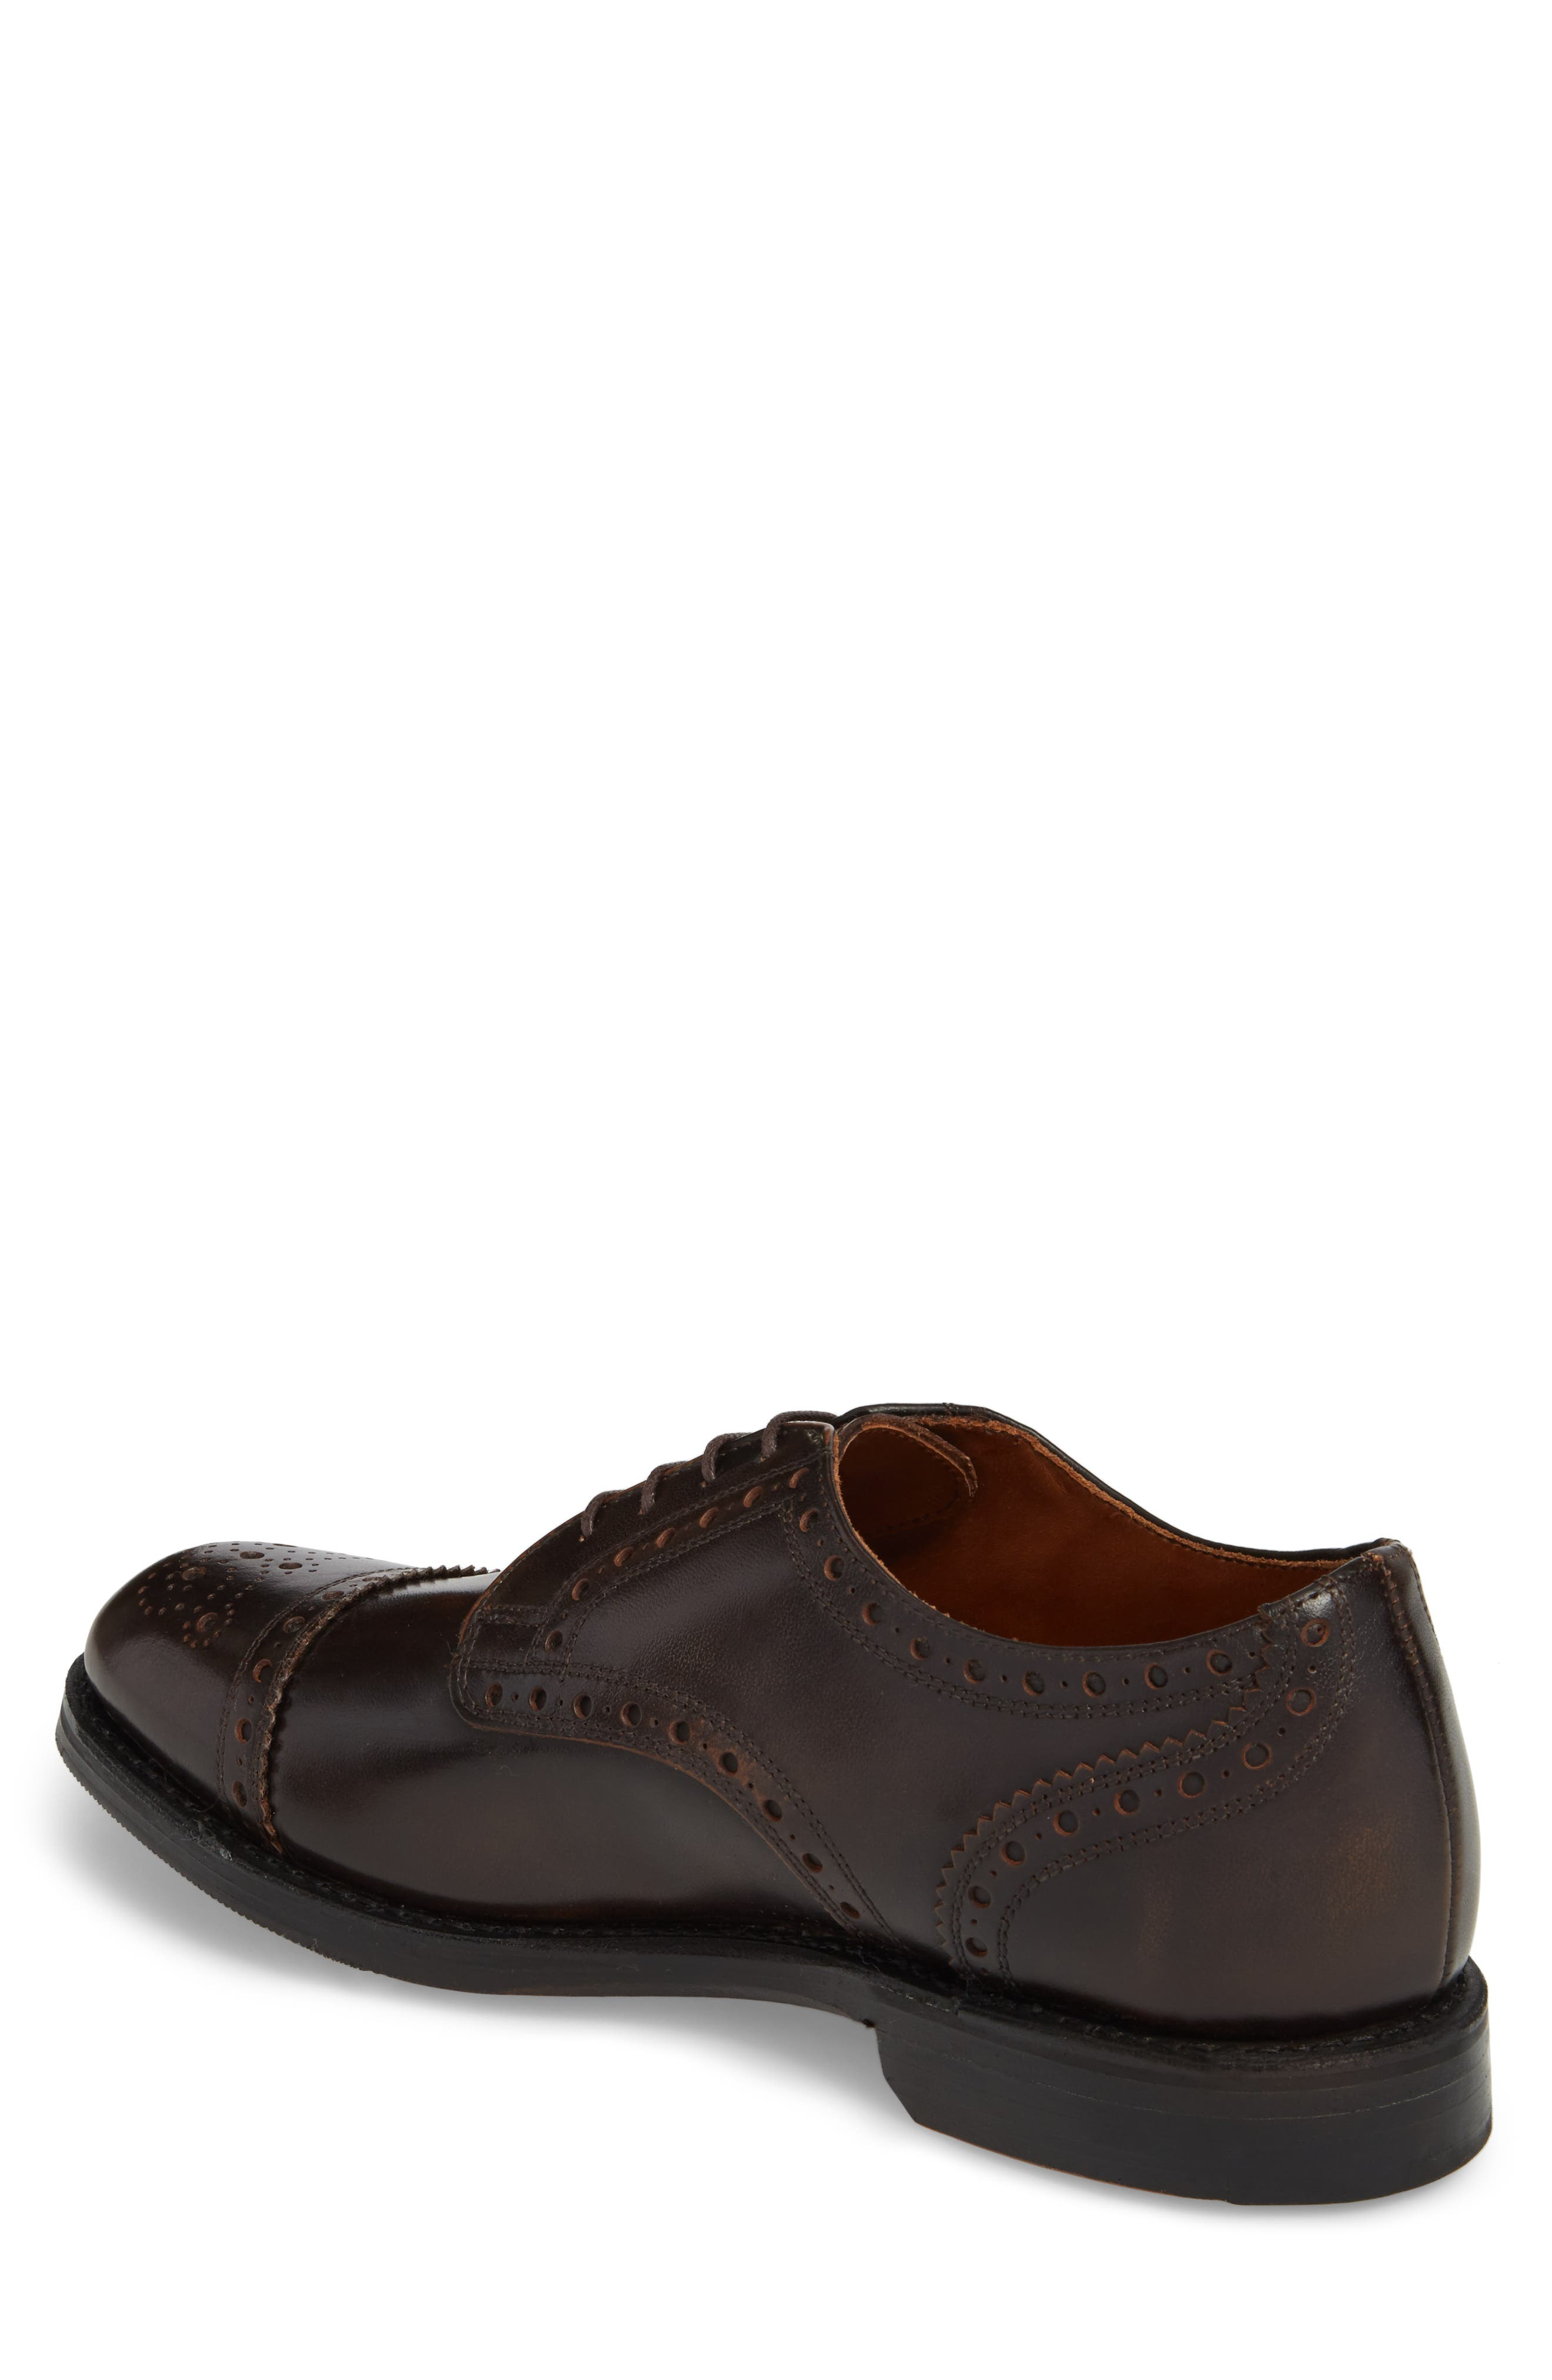 Whitney Medallion Toe Derby,                             Alternate thumbnail 2, color,                             Brown Leather